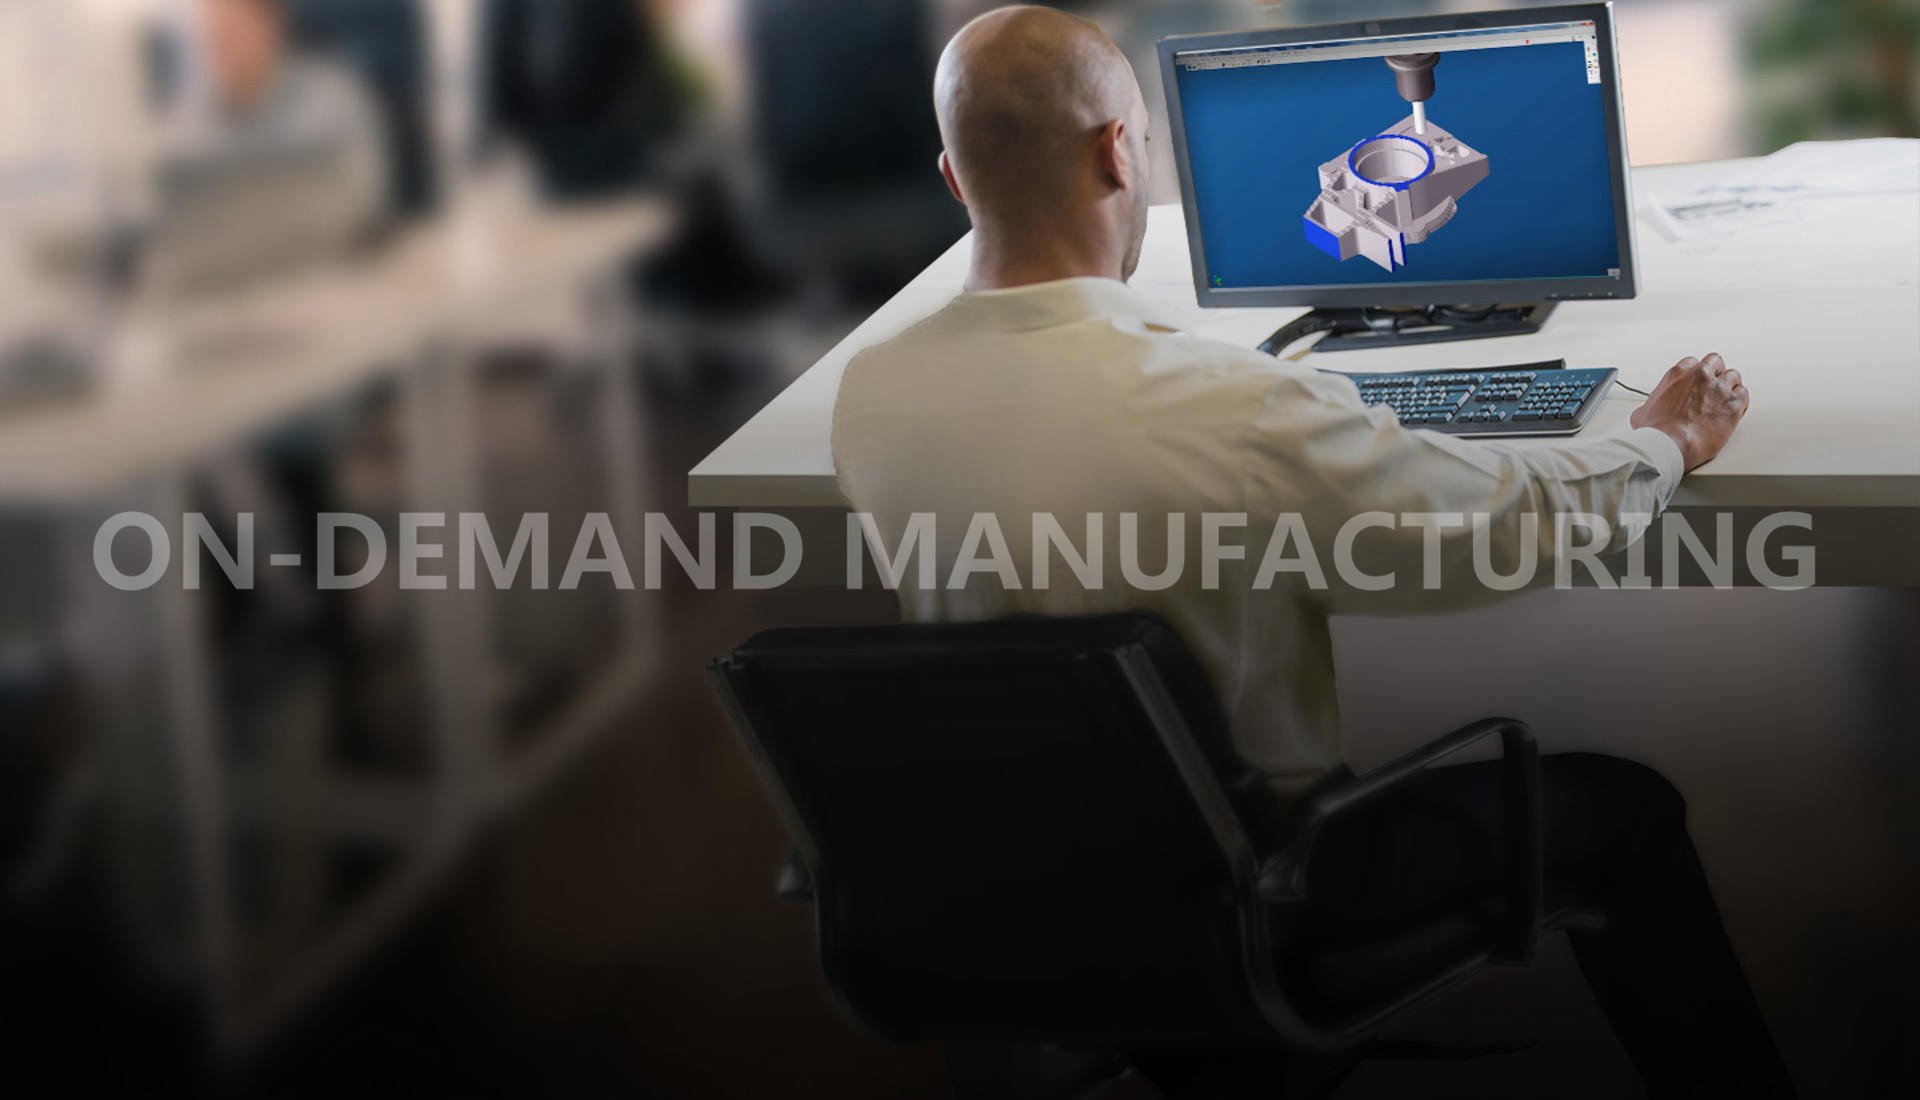 Blog_001-on_demand_manufacturing-feature_image